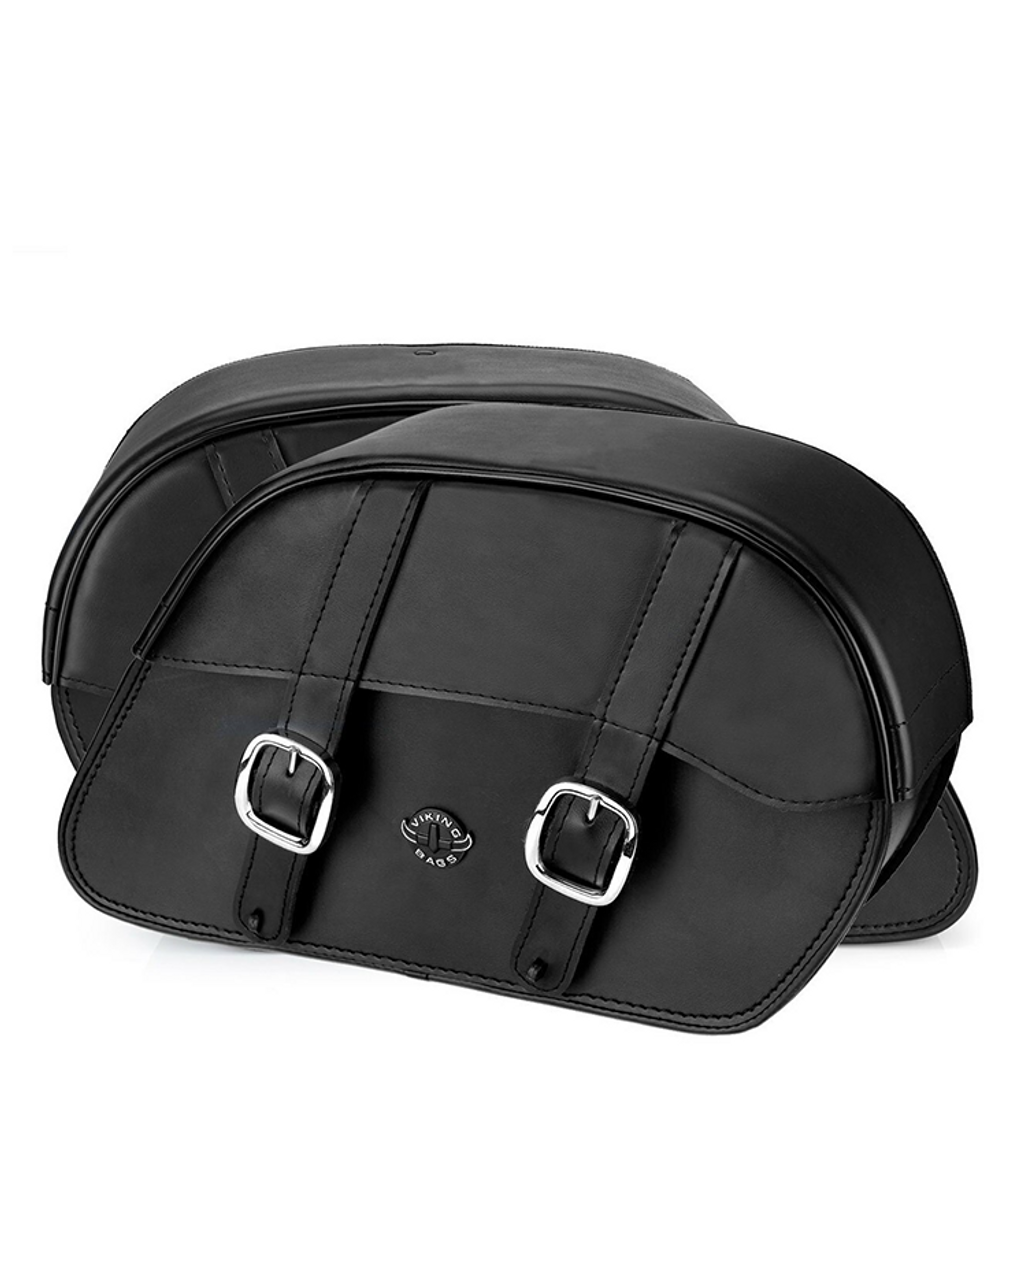 Viking Slanted Large Motorcycle Saddlebags For Harley Softail Fat Boy Lo Both Bags View